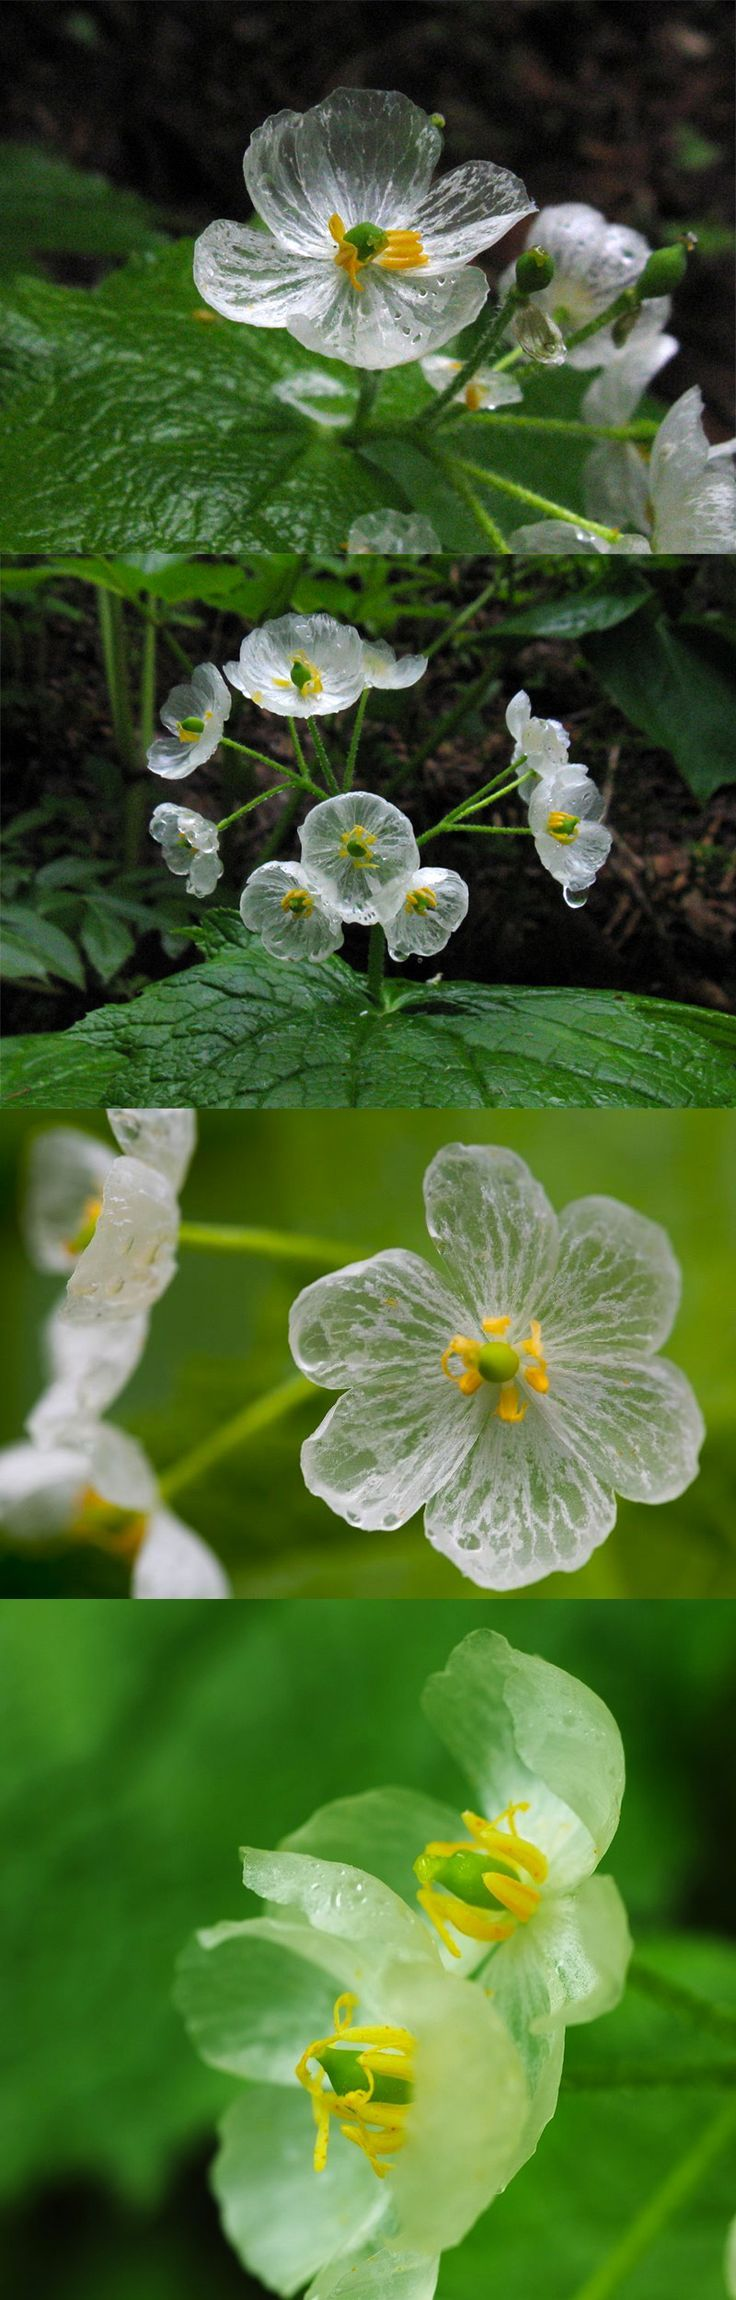 "The ""Skeleton Flower"" Turns From White to Translucent When Exposed to Water"